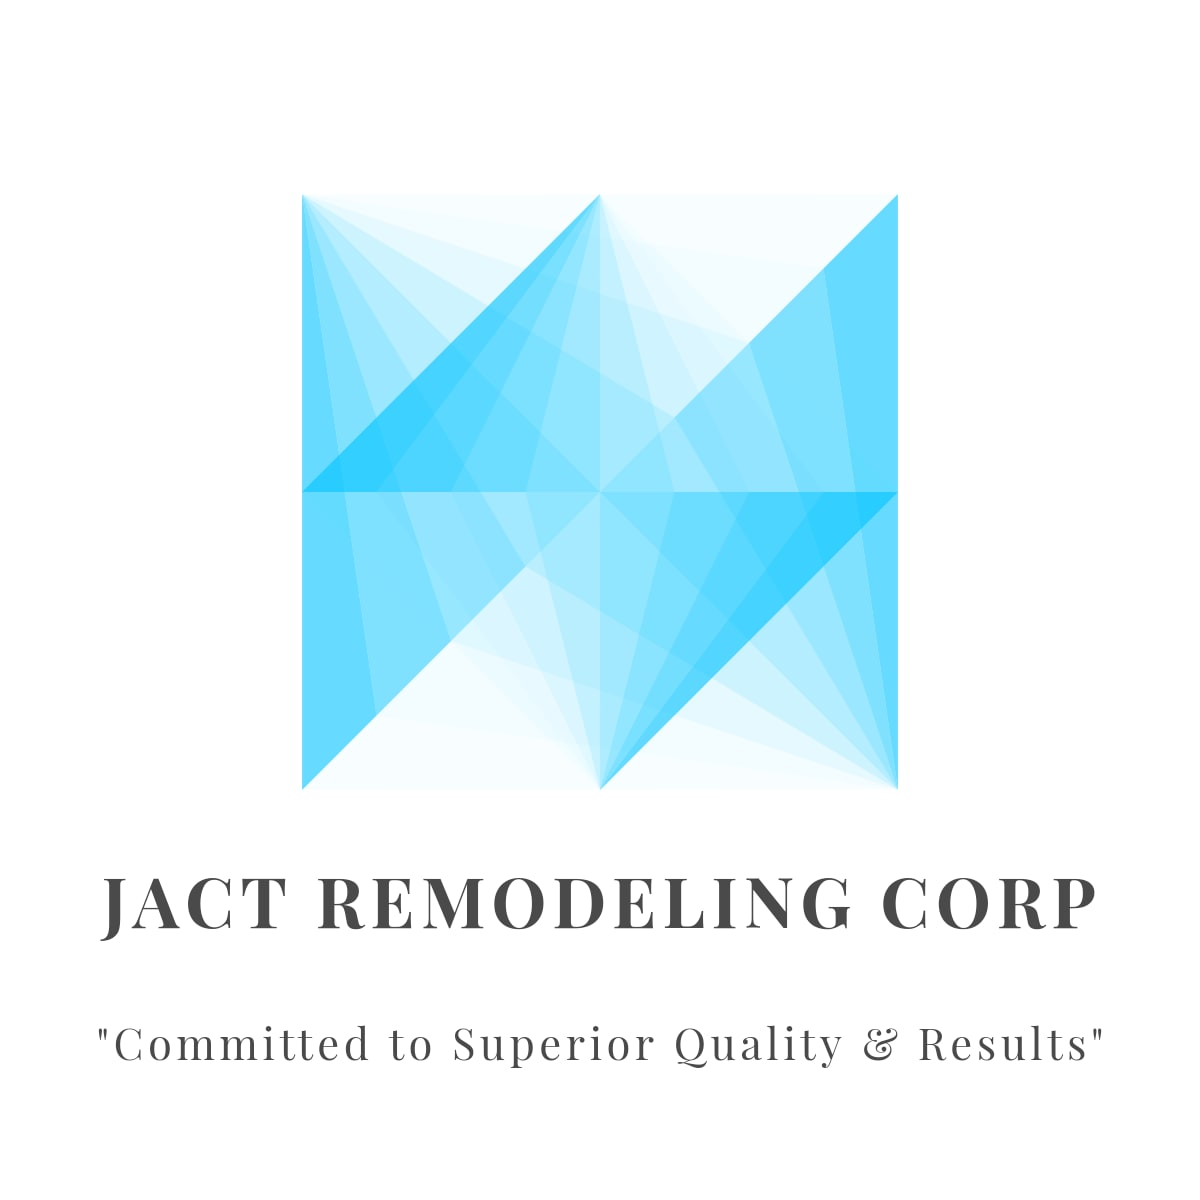 JACT Remodeling Corp